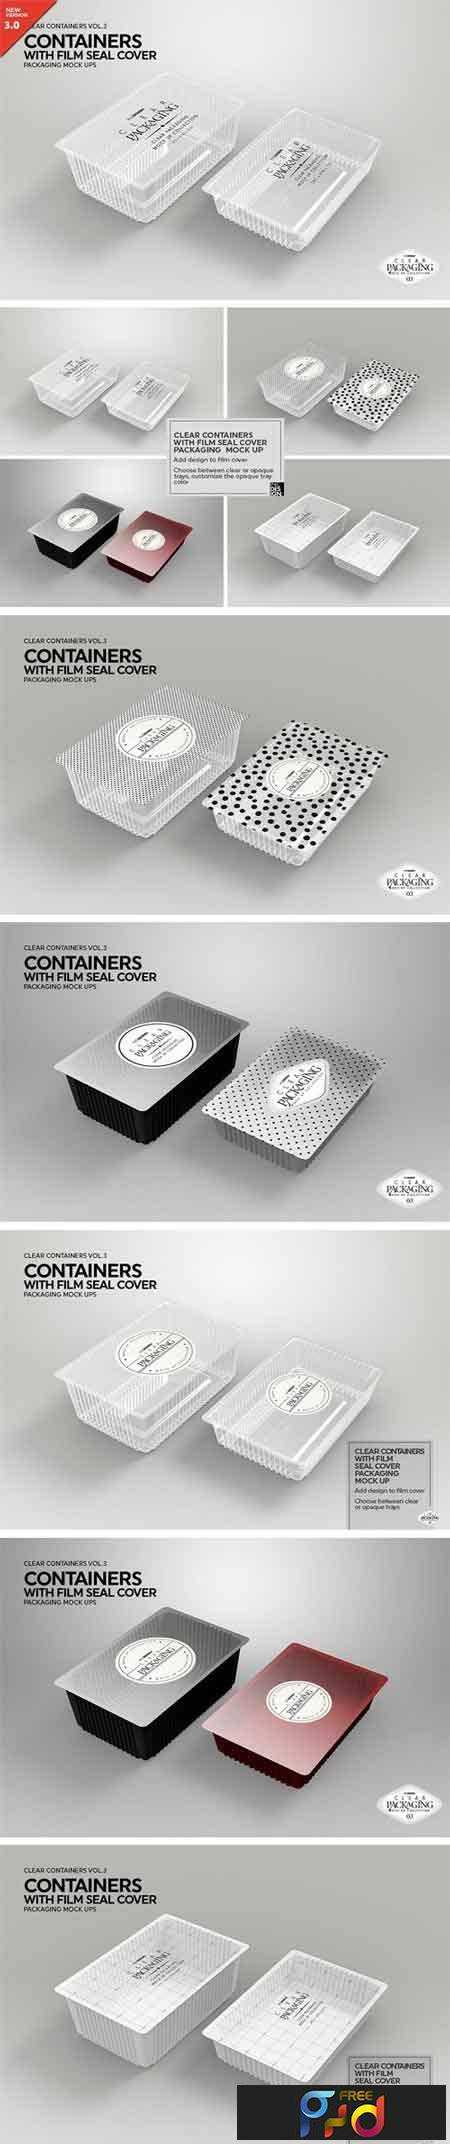 1708078 Clear Film Seal Container MockUp 2022766 1